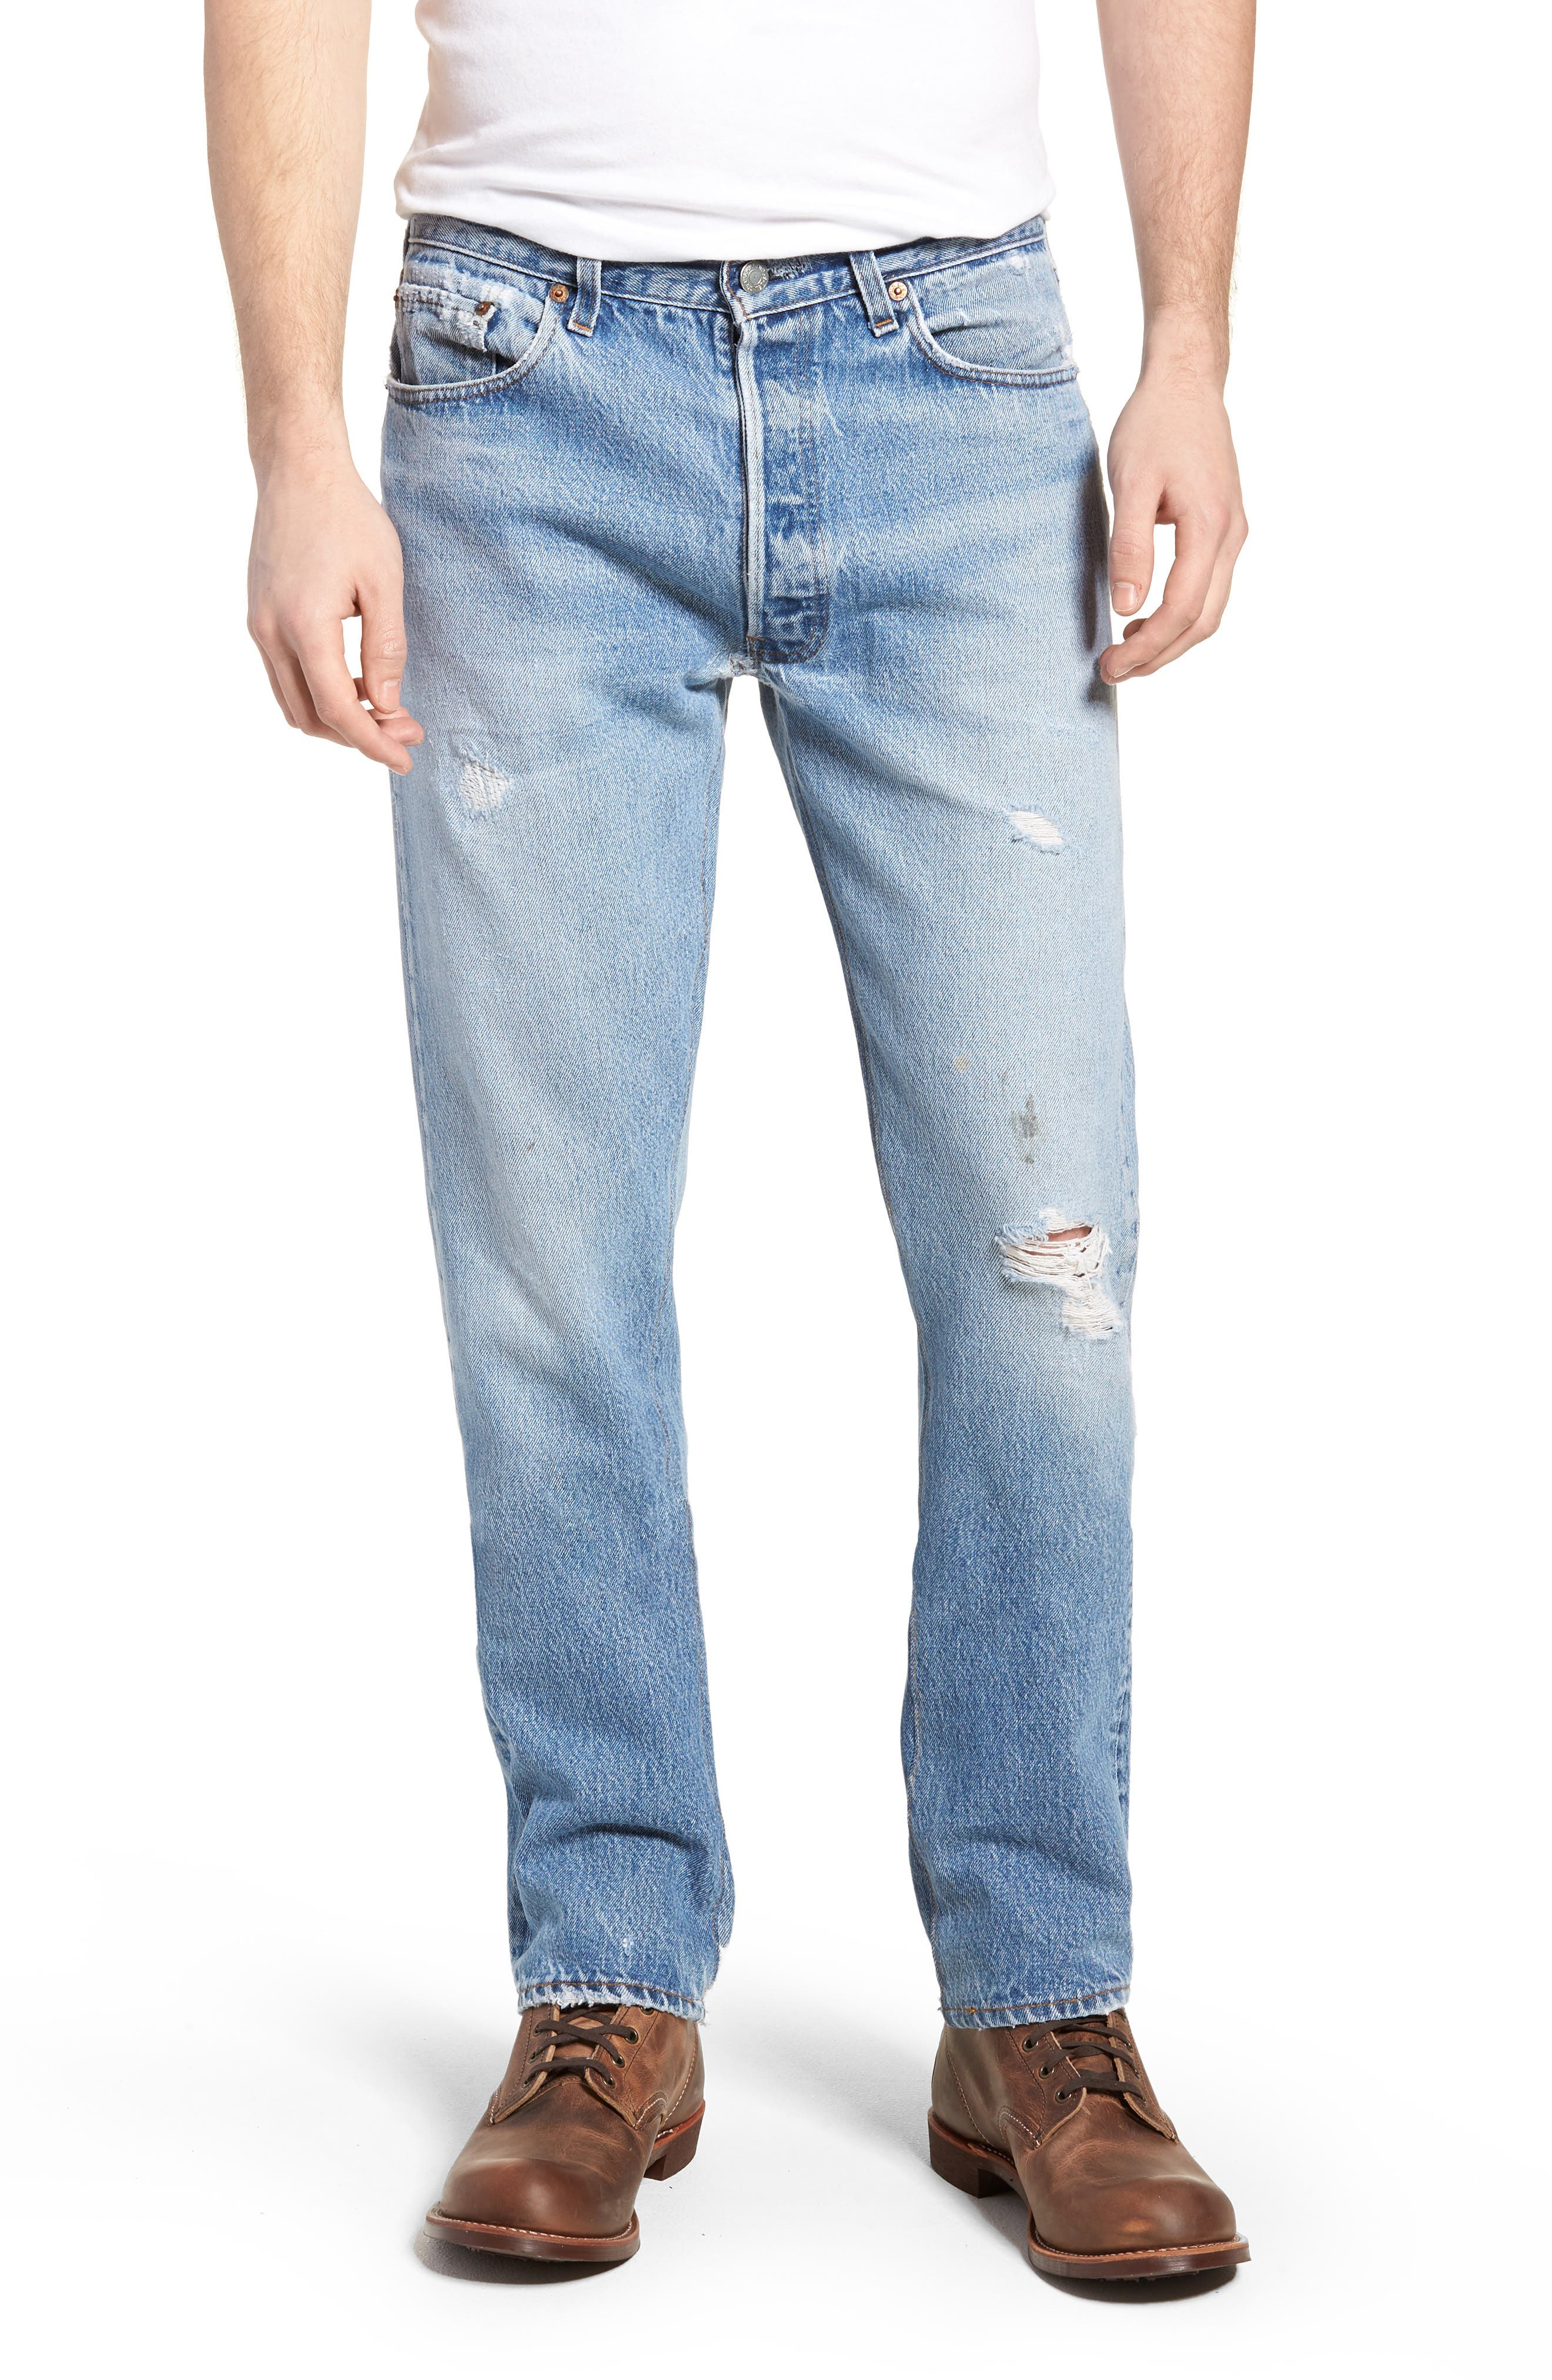 LEVI'S<SUP>®</SUP>, Authorized Vintage 501<sup>™</sup> Tapered Slim Fit Jeans, Main thumbnail 1, color, 400